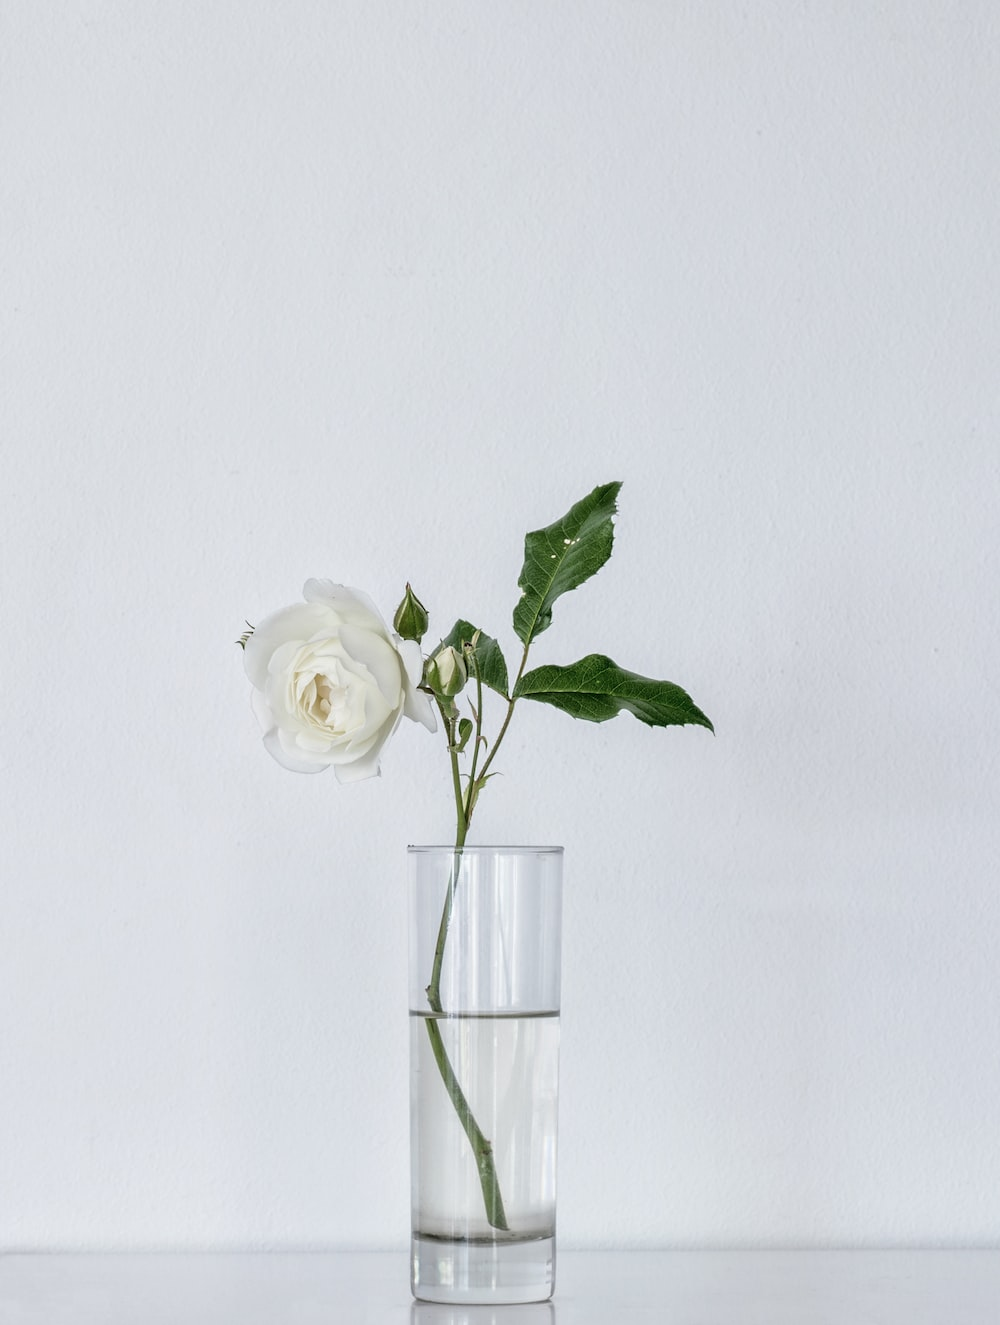 100 white flower pictures download free images on unsplash white flower pictures mightylinksfo